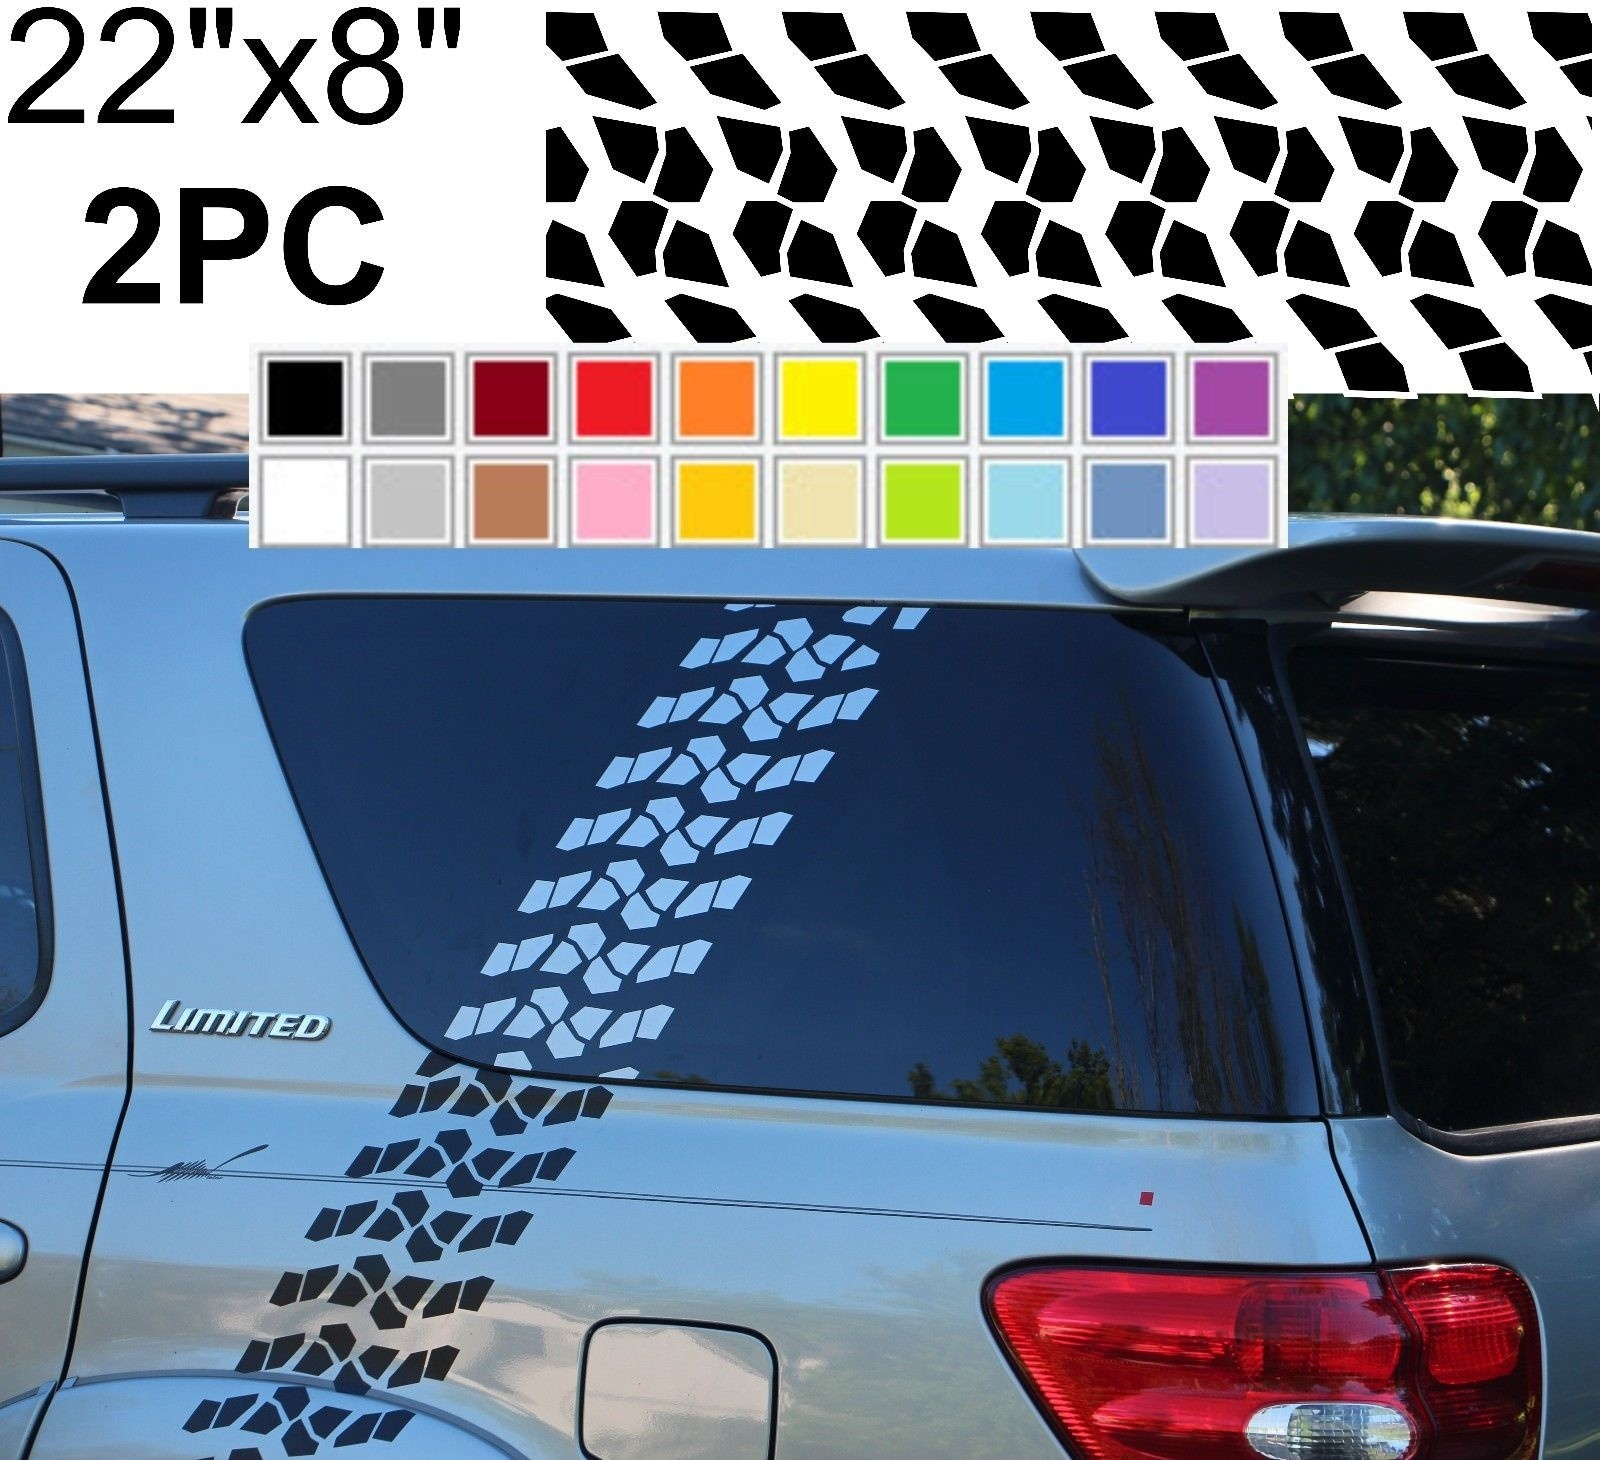 BIG TRUCK decal sticker vinyl funny bumper jdm 4X4 SUV JEEP OFFROAD GMC 4WD Jeep